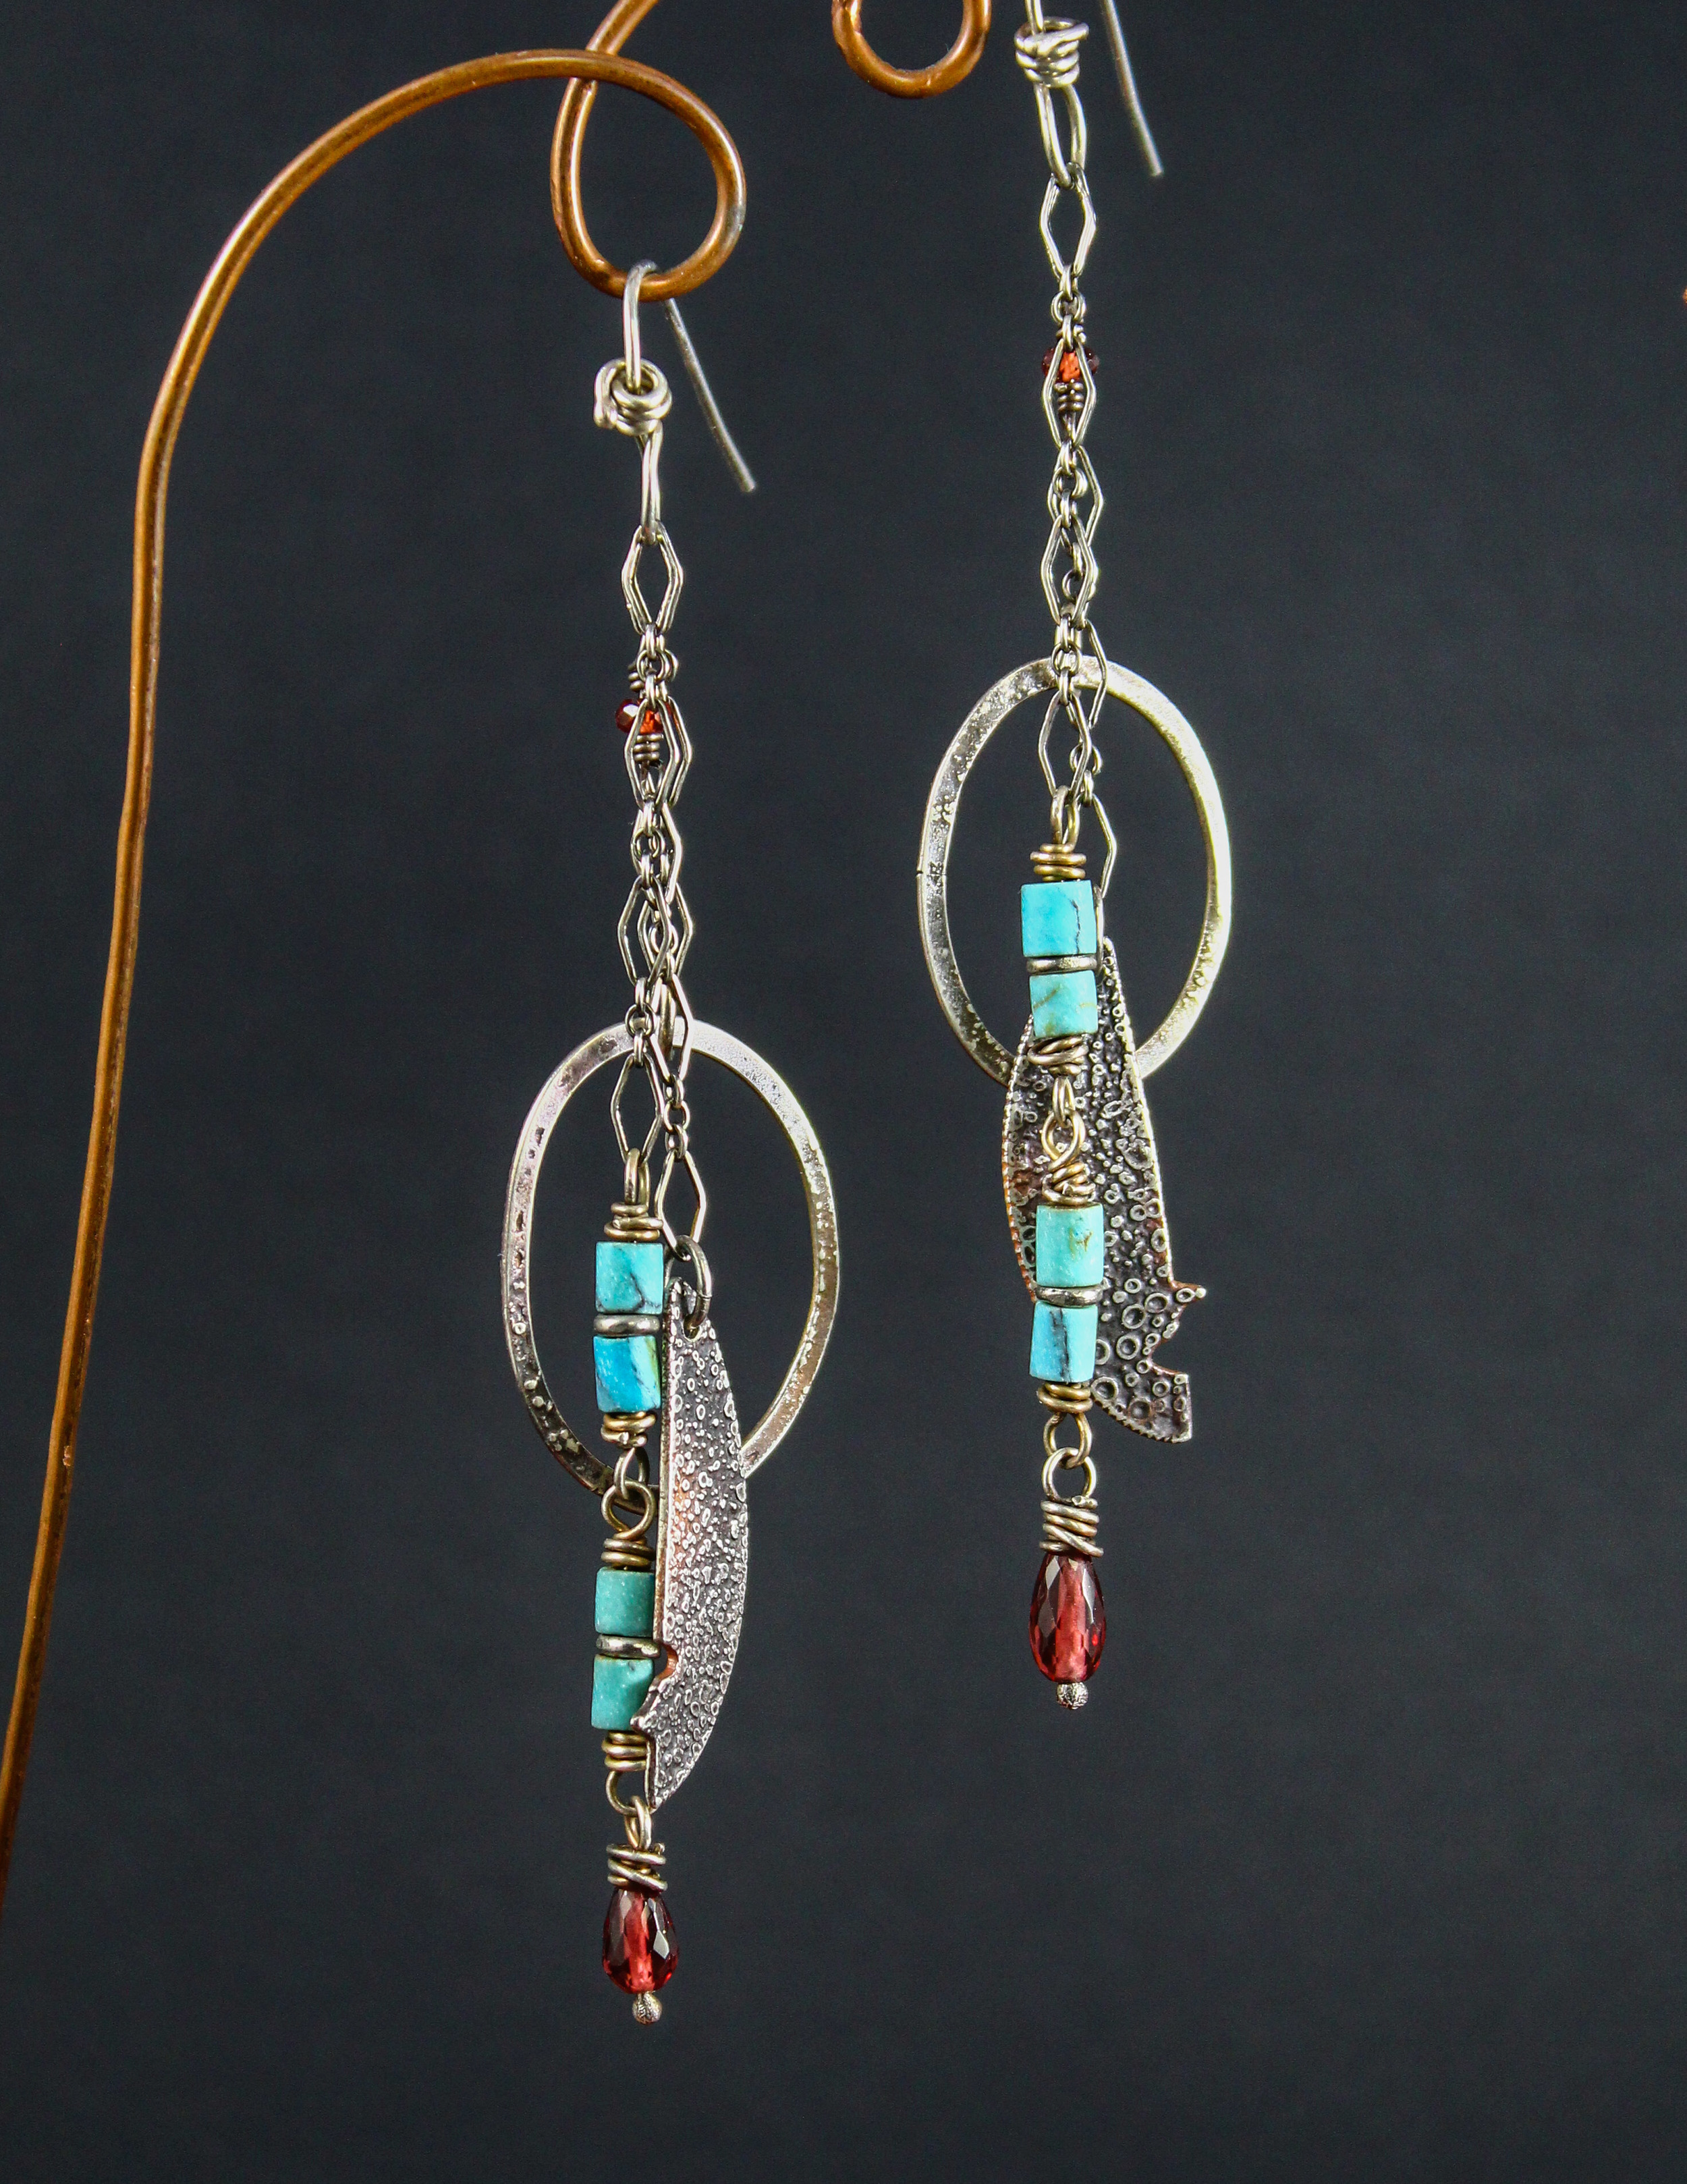 Reticulated Sterling Hoops and Turquoise Earrings